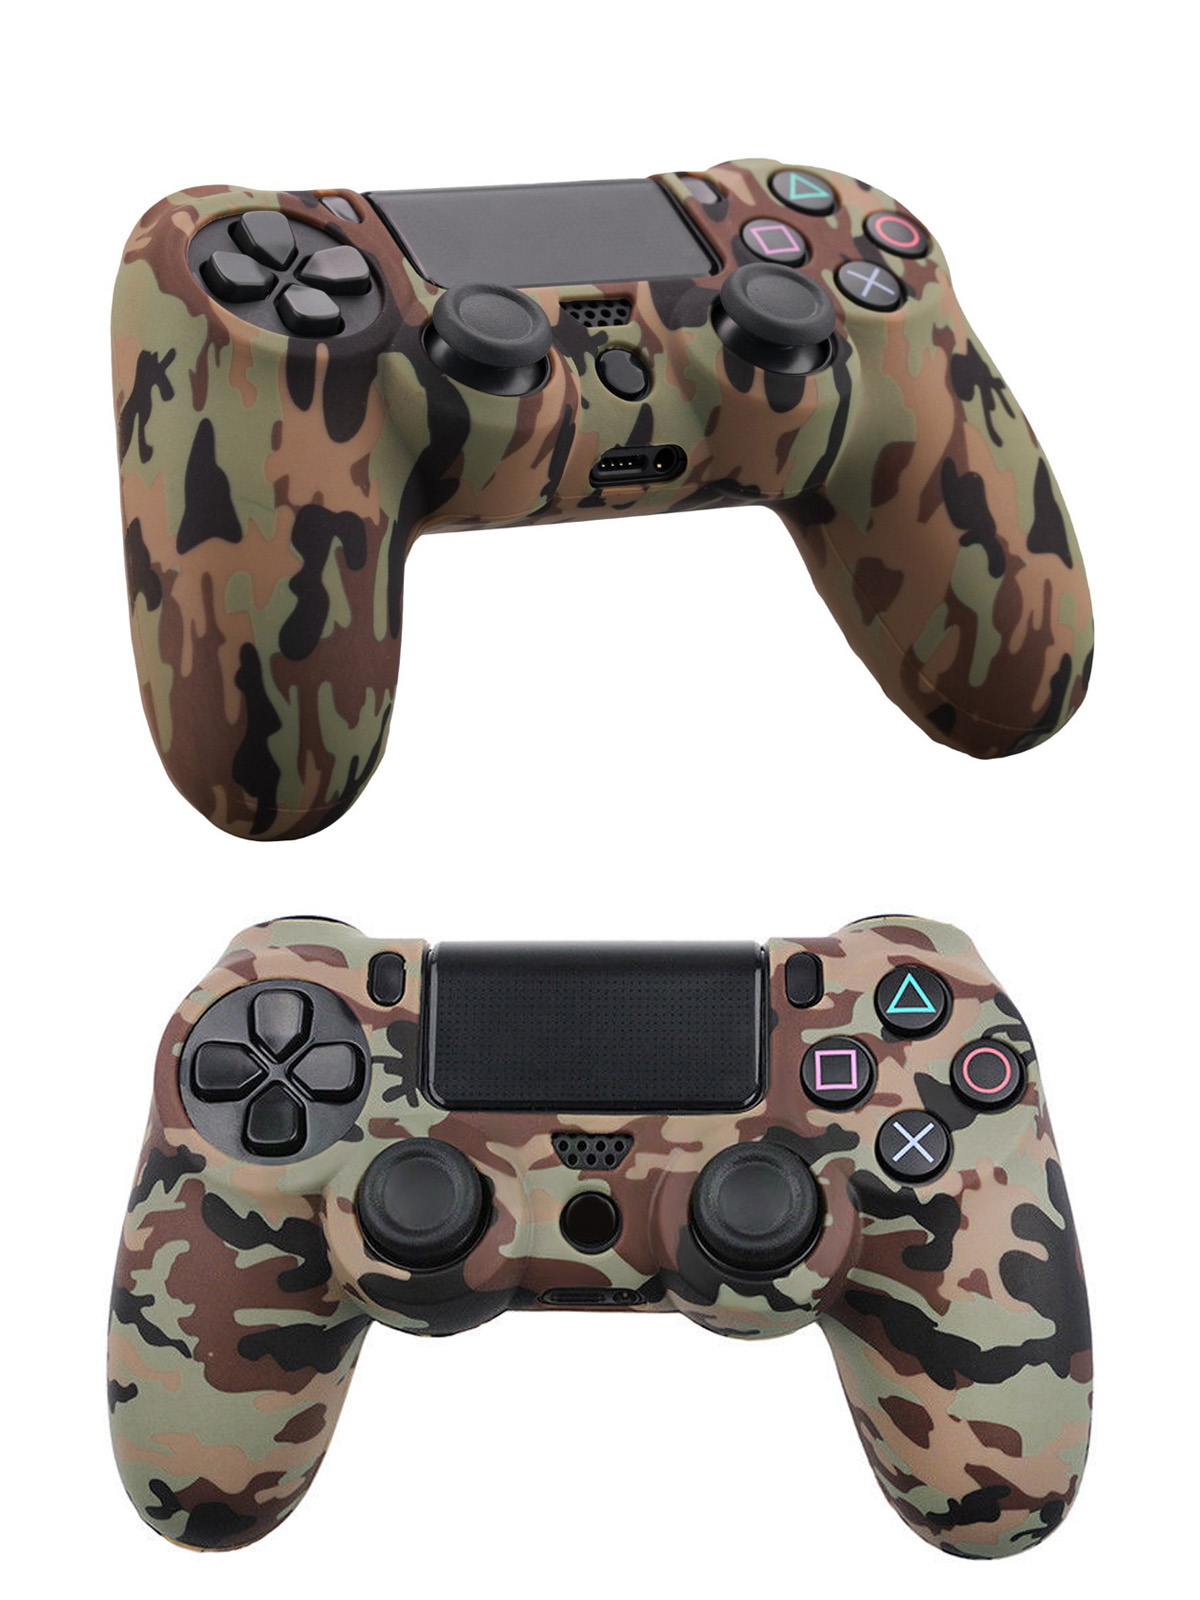 TSV Silicone PS4 Controller Skin, Design of Water Transfer Printing Skin  Protector Anti-Slip Silicone Cover Case for Sony PlayStation 4 Controller